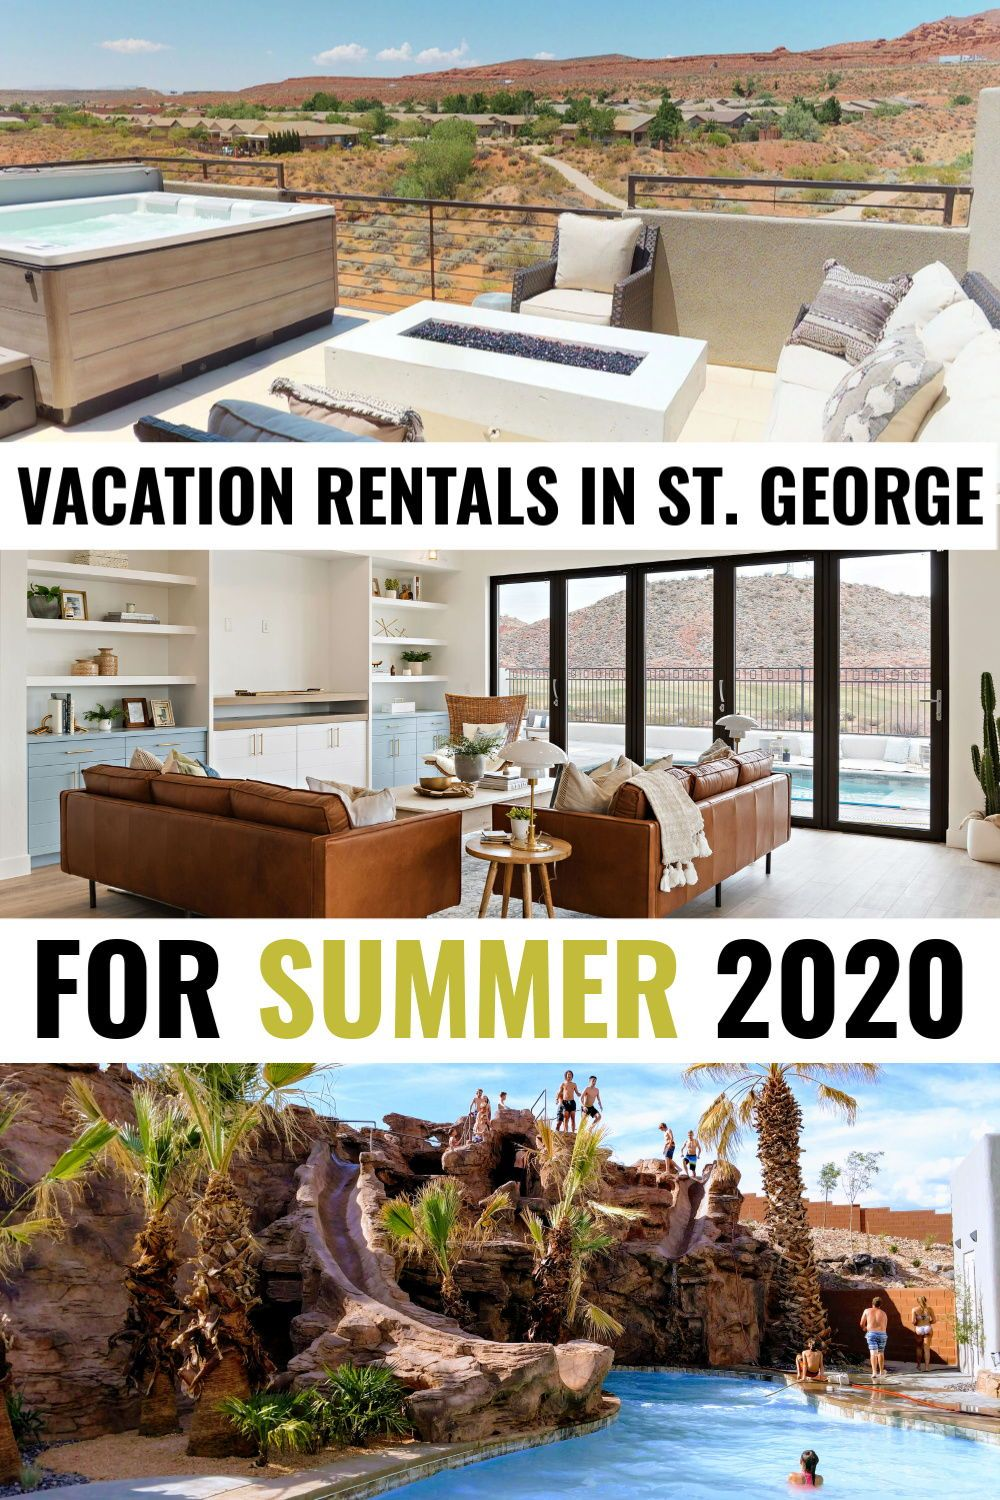 Best vacation rentals in st utah coral canyon